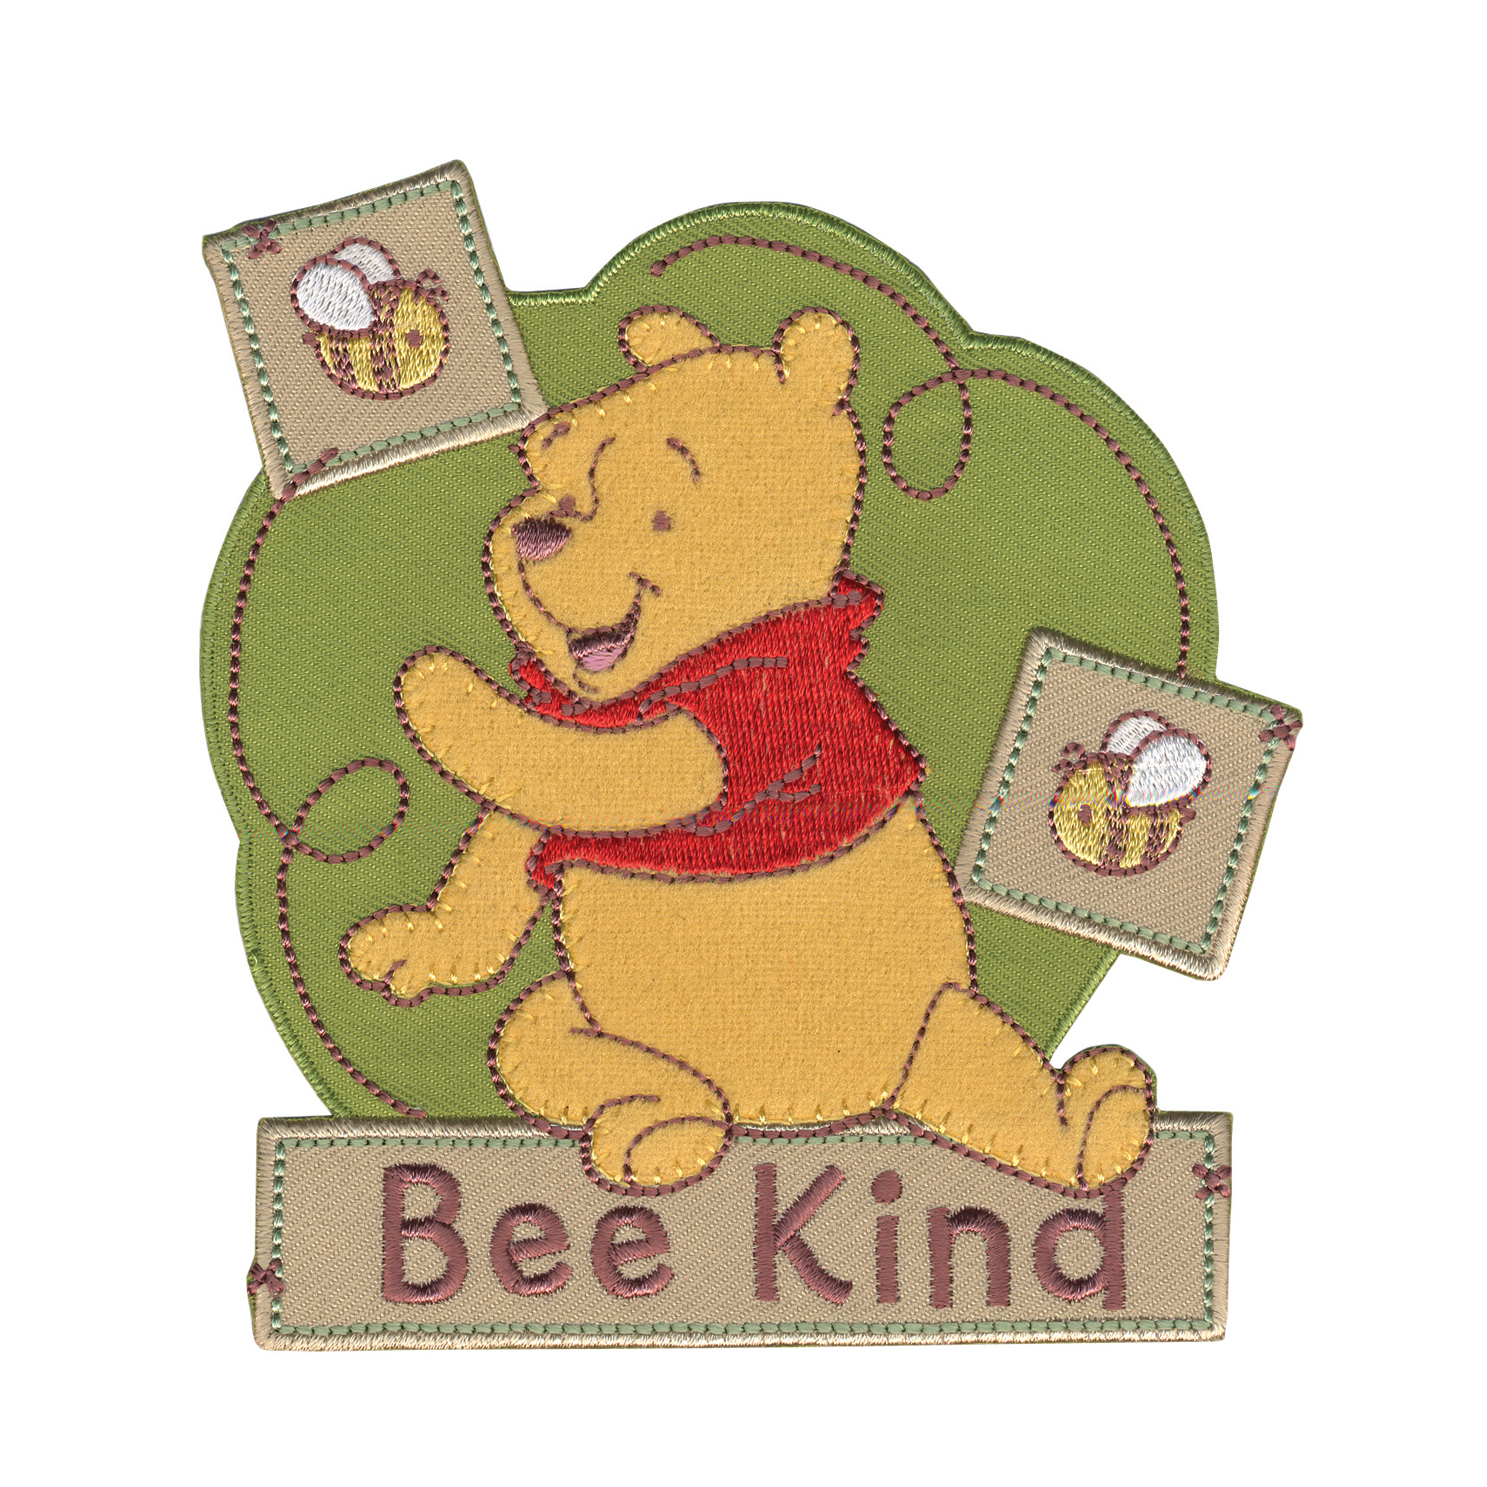 Disney Winnie The Pooh Iron On Applique Bee Kind by Notions Marketing in USA